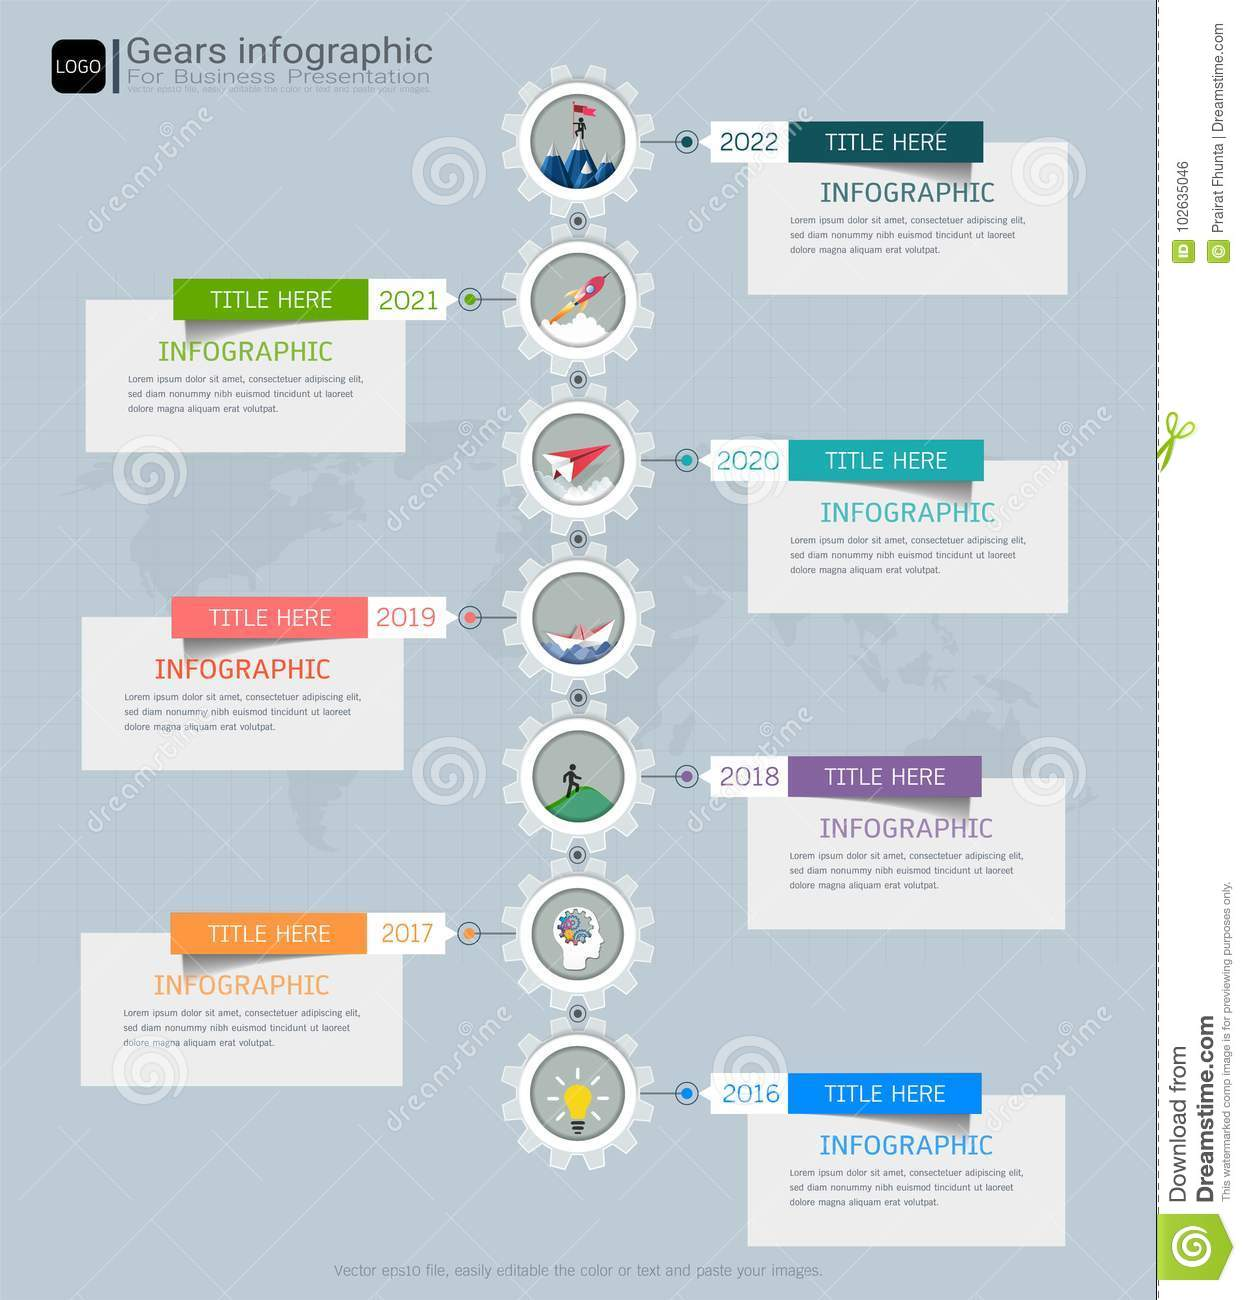 Gears infographic template for business presentation strategic plan gears infographic template for business presentation strategic plan to define company values cheaphphosting Images